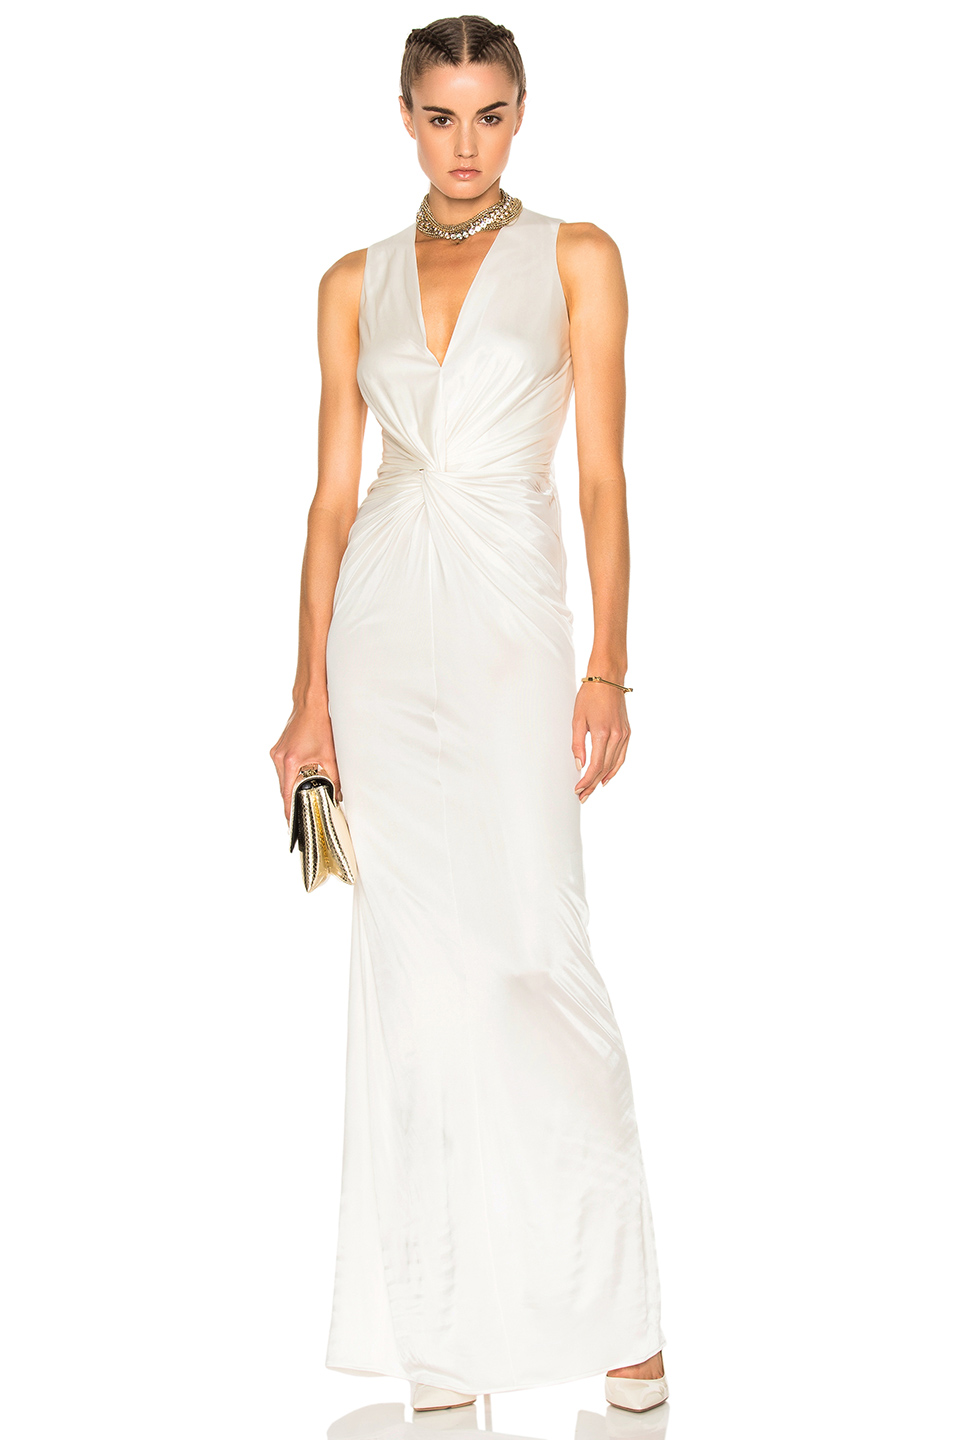 Lanvin Crossover Sleeveless Gown in White